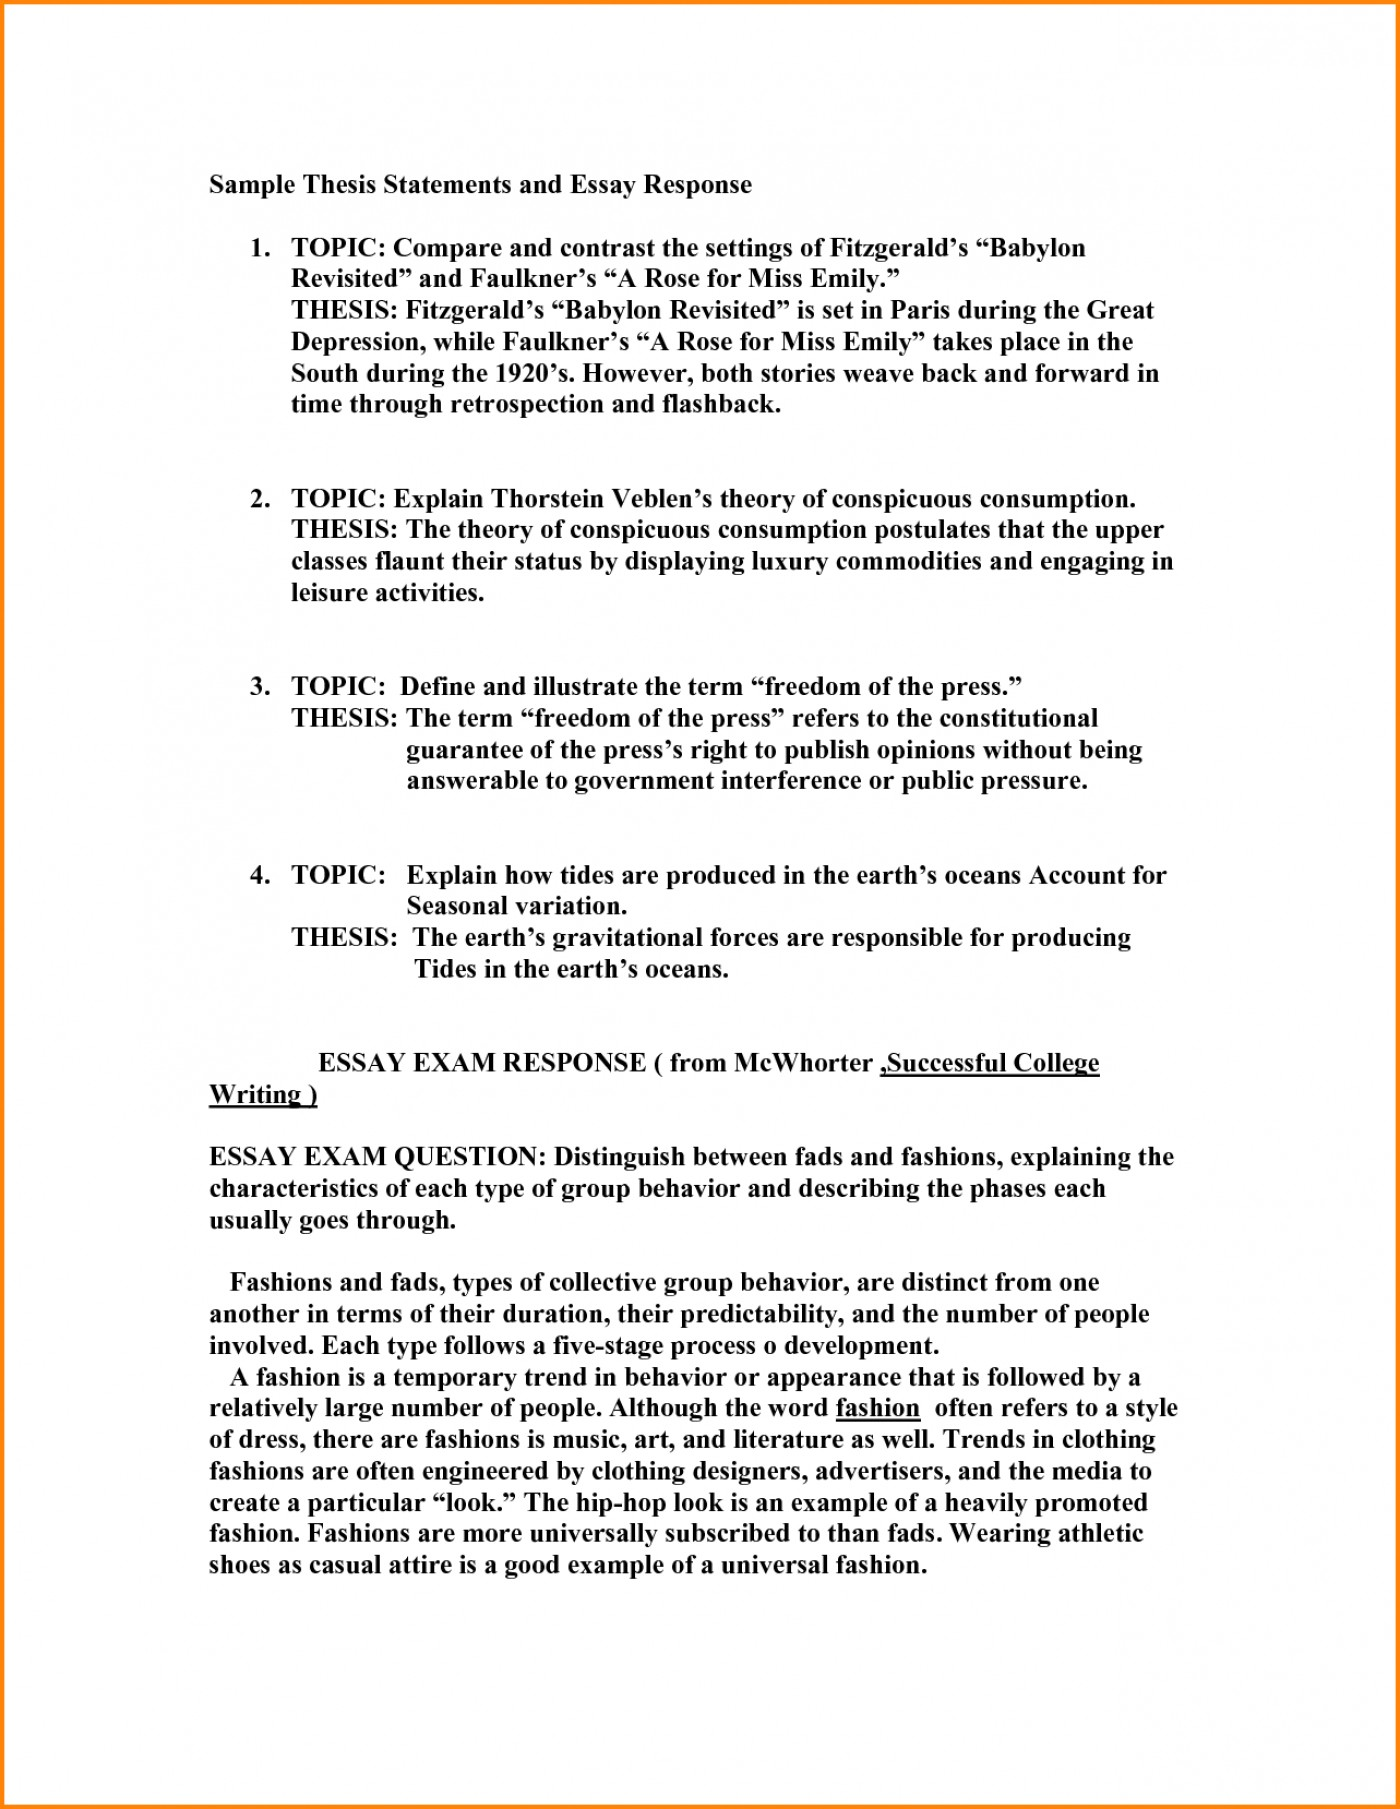 005 Poverty Research Paper Outline Thesis Statement Examples For Essays Amazing In America 1400